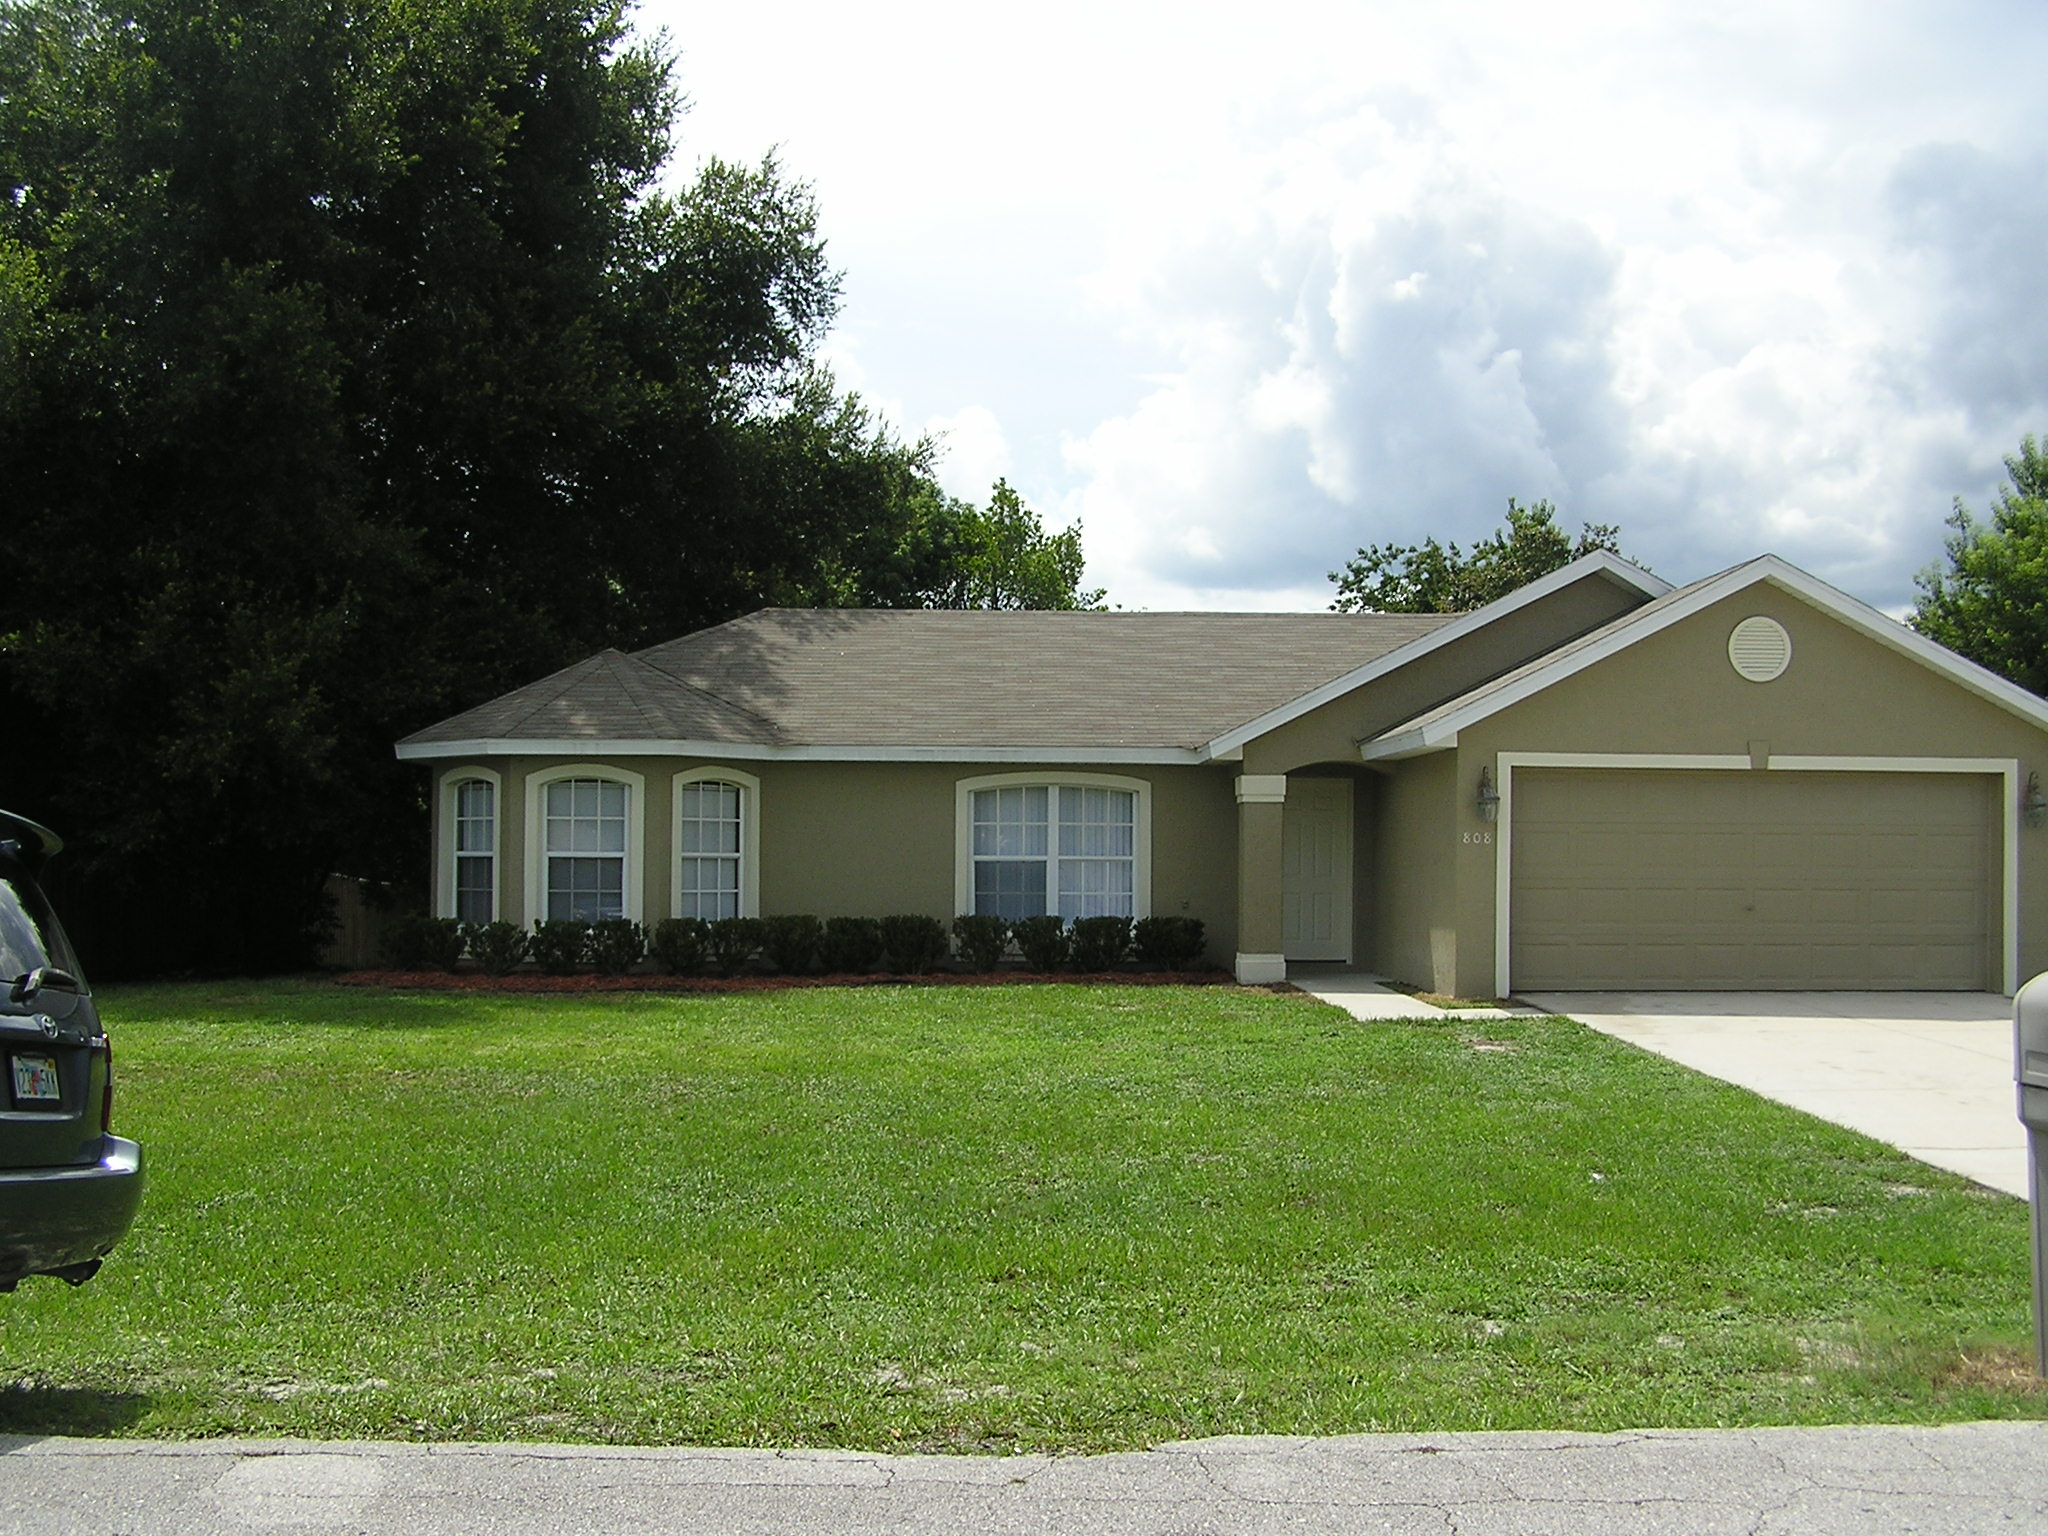 Deland Houses For Rent In Deland Homes For Rent Florida